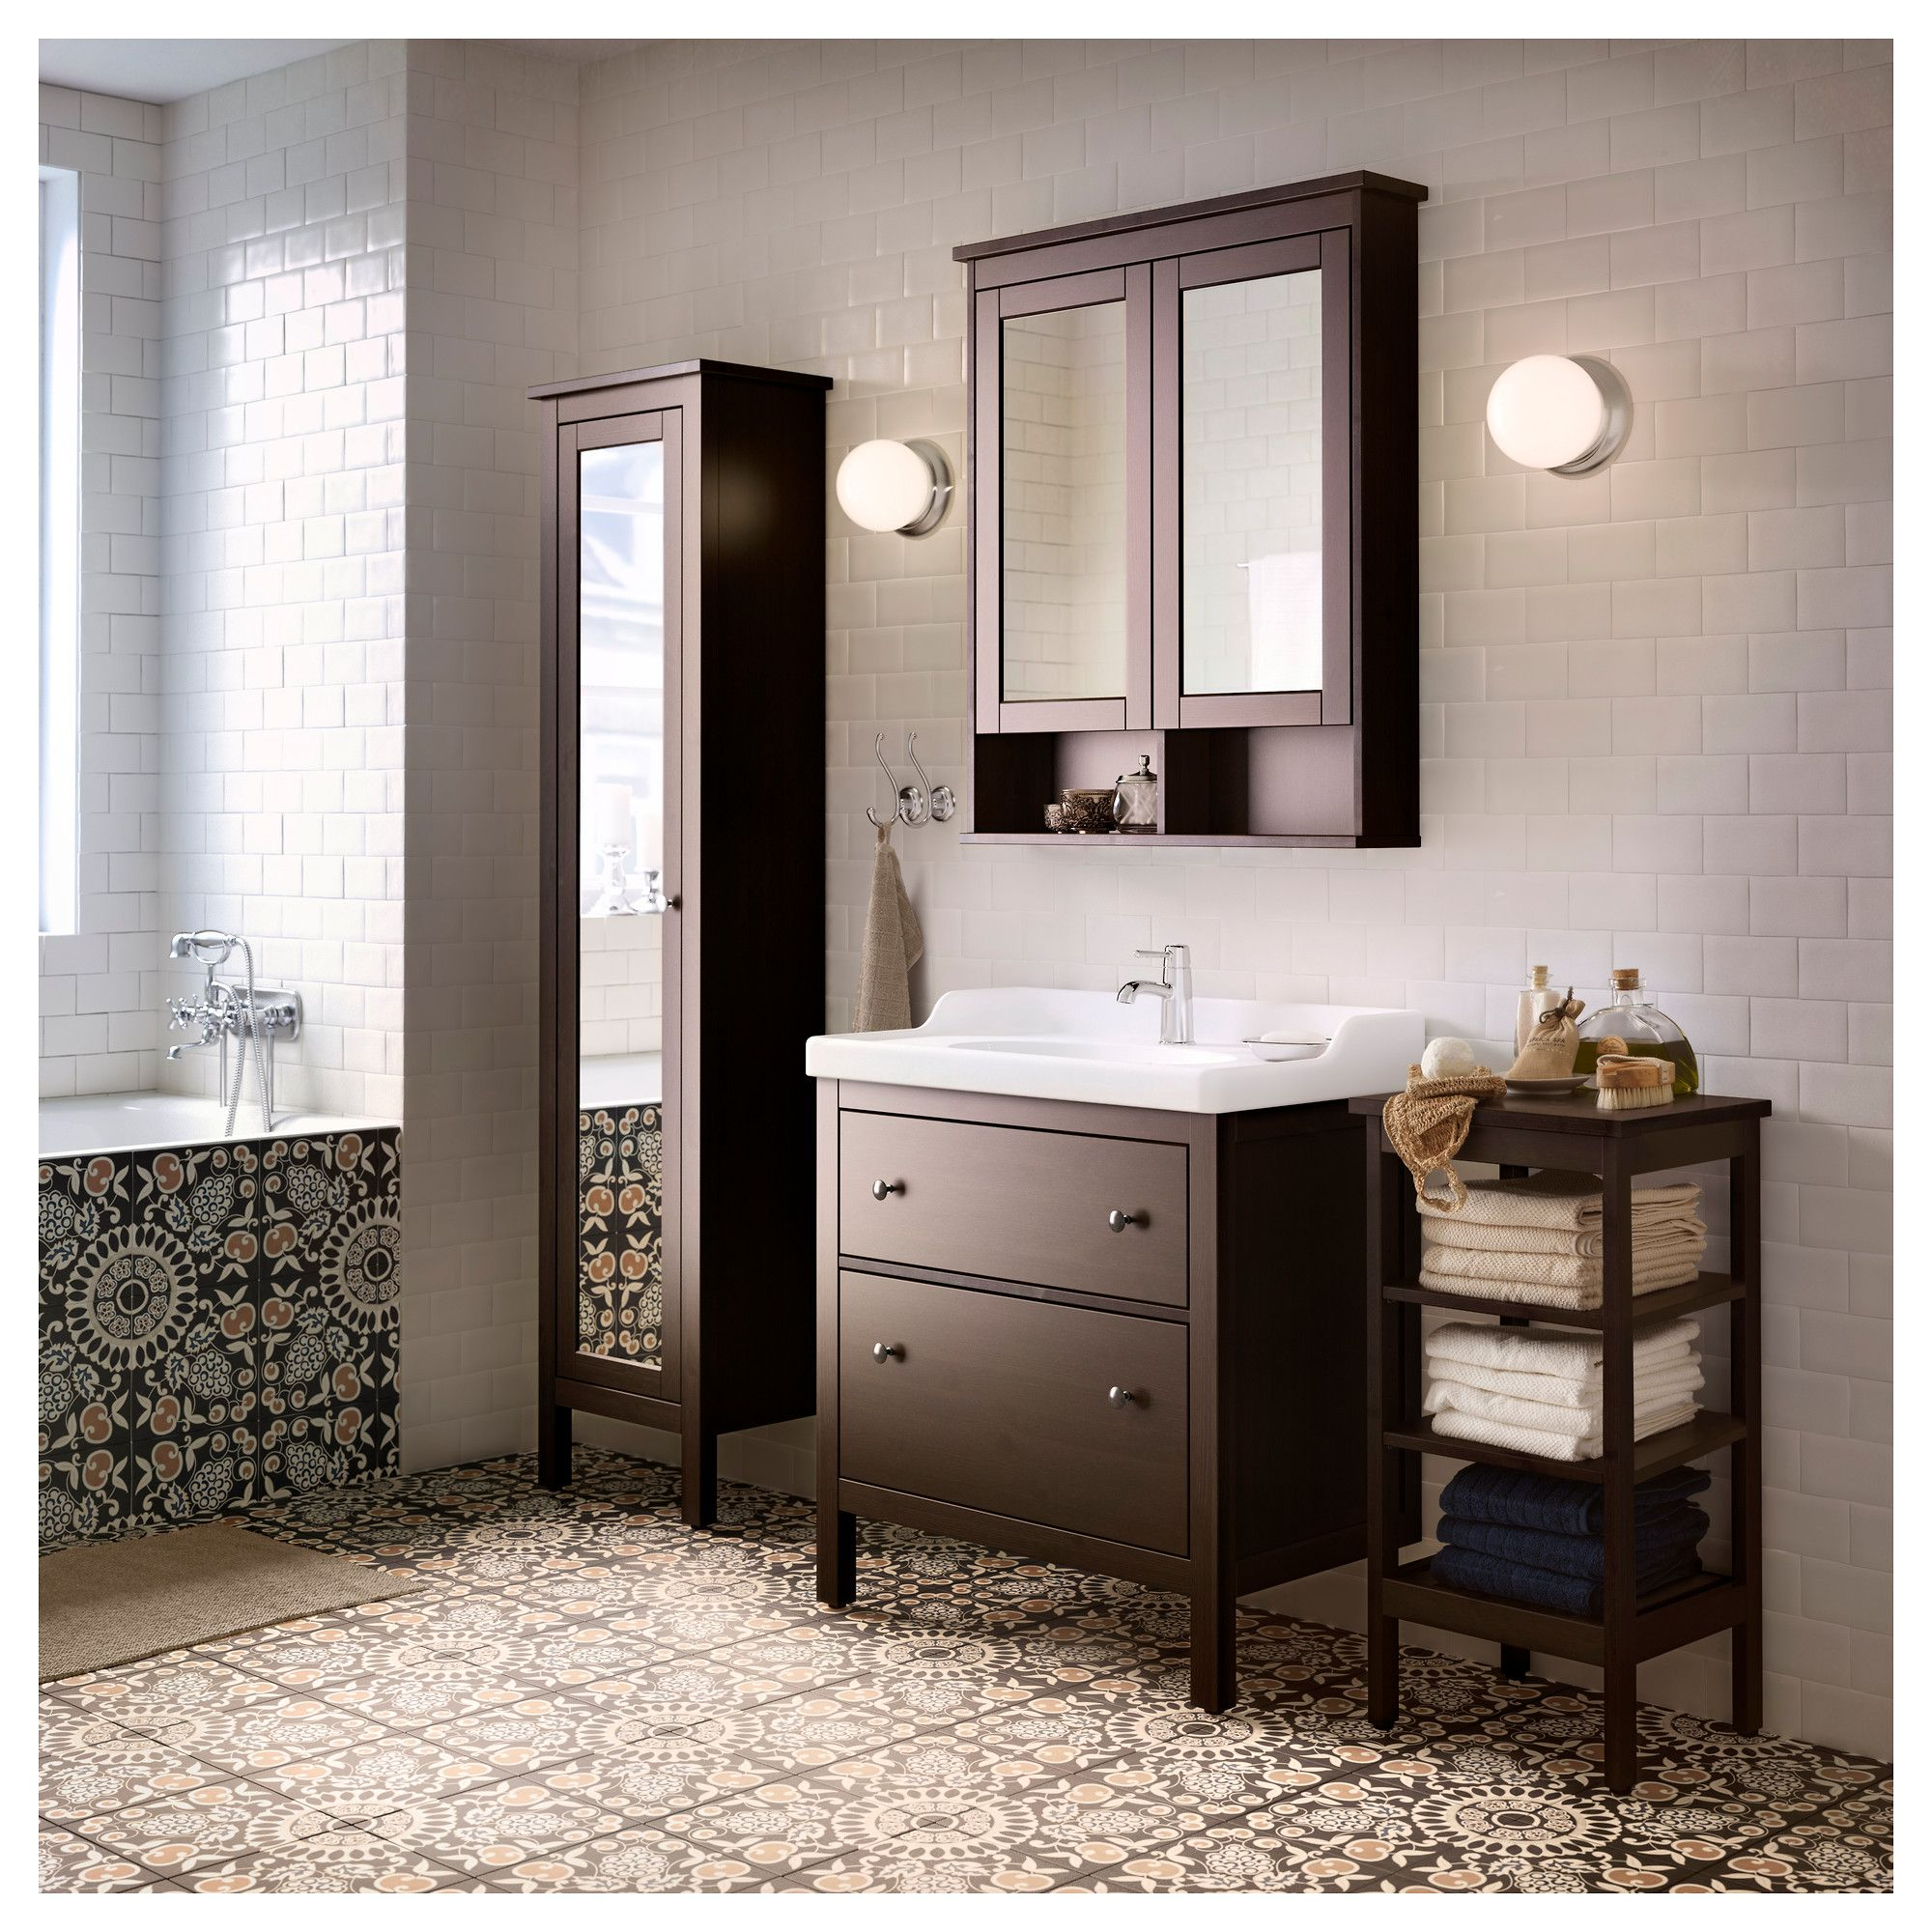 whomsley brown west medicine pa chester img bathroom cabinet llc cabinets aaron